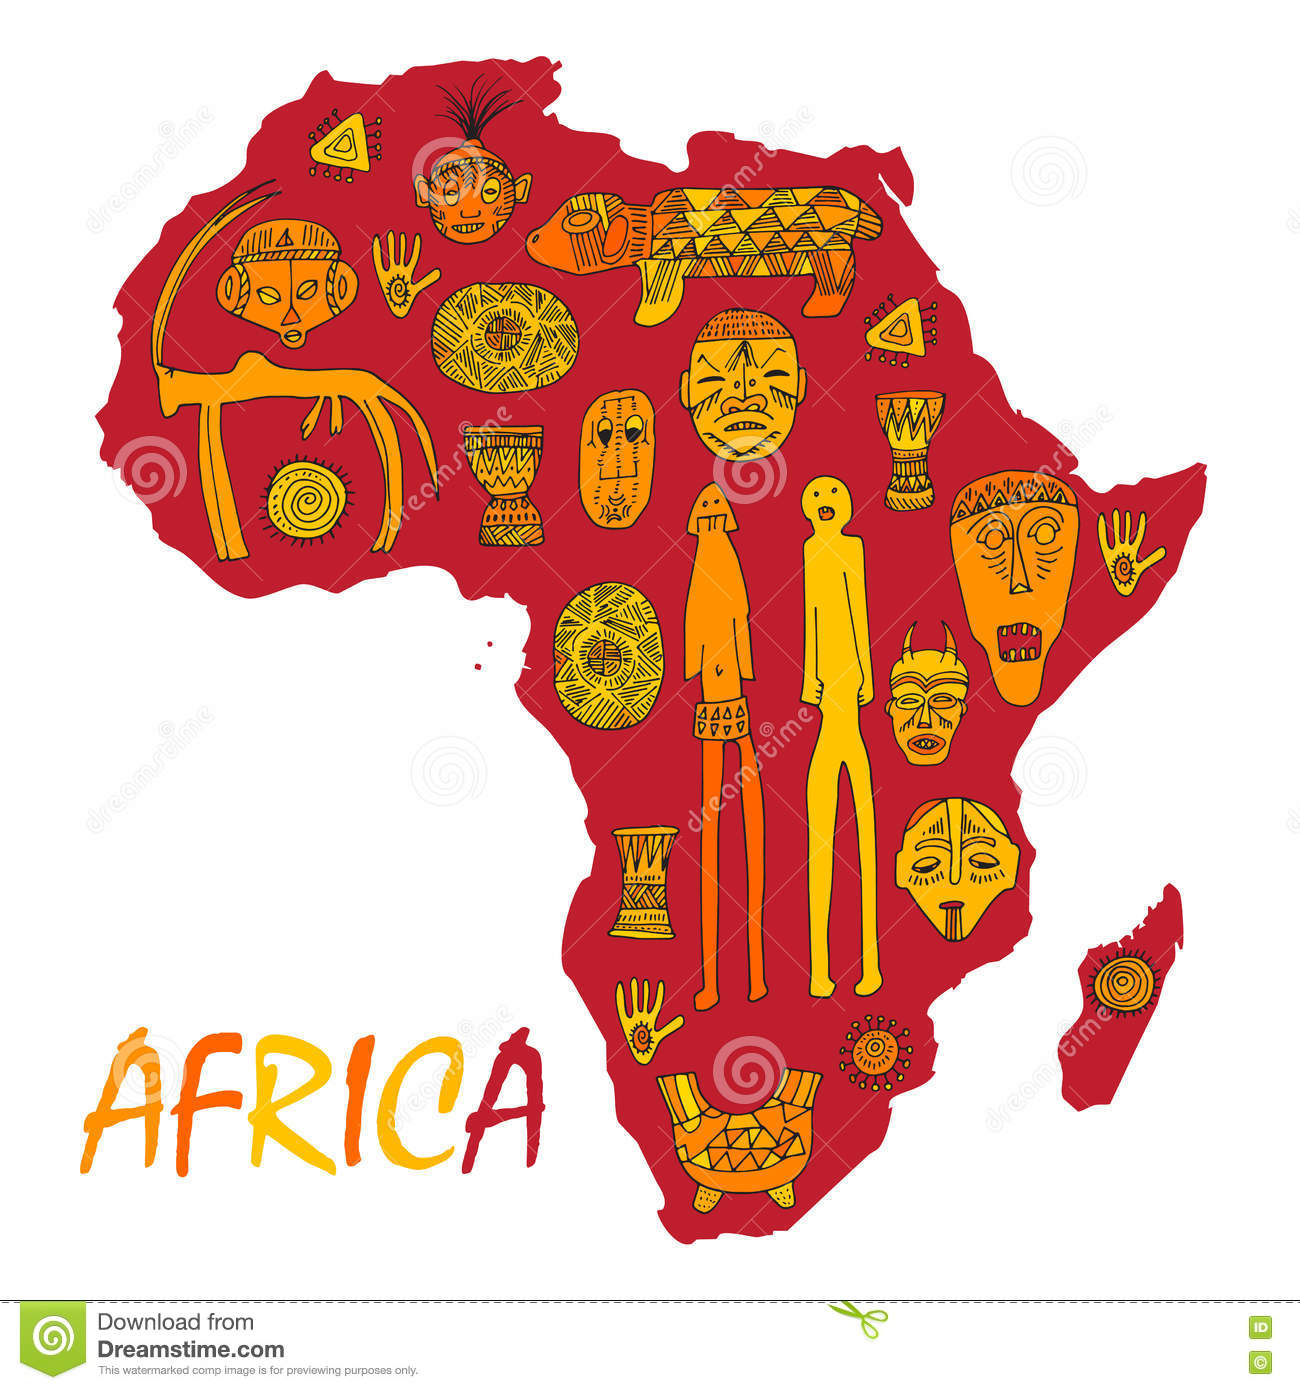 Africa map with different ancient symbols and signs stock vector africa map with different ancient symbols and signs object continent buycottarizona